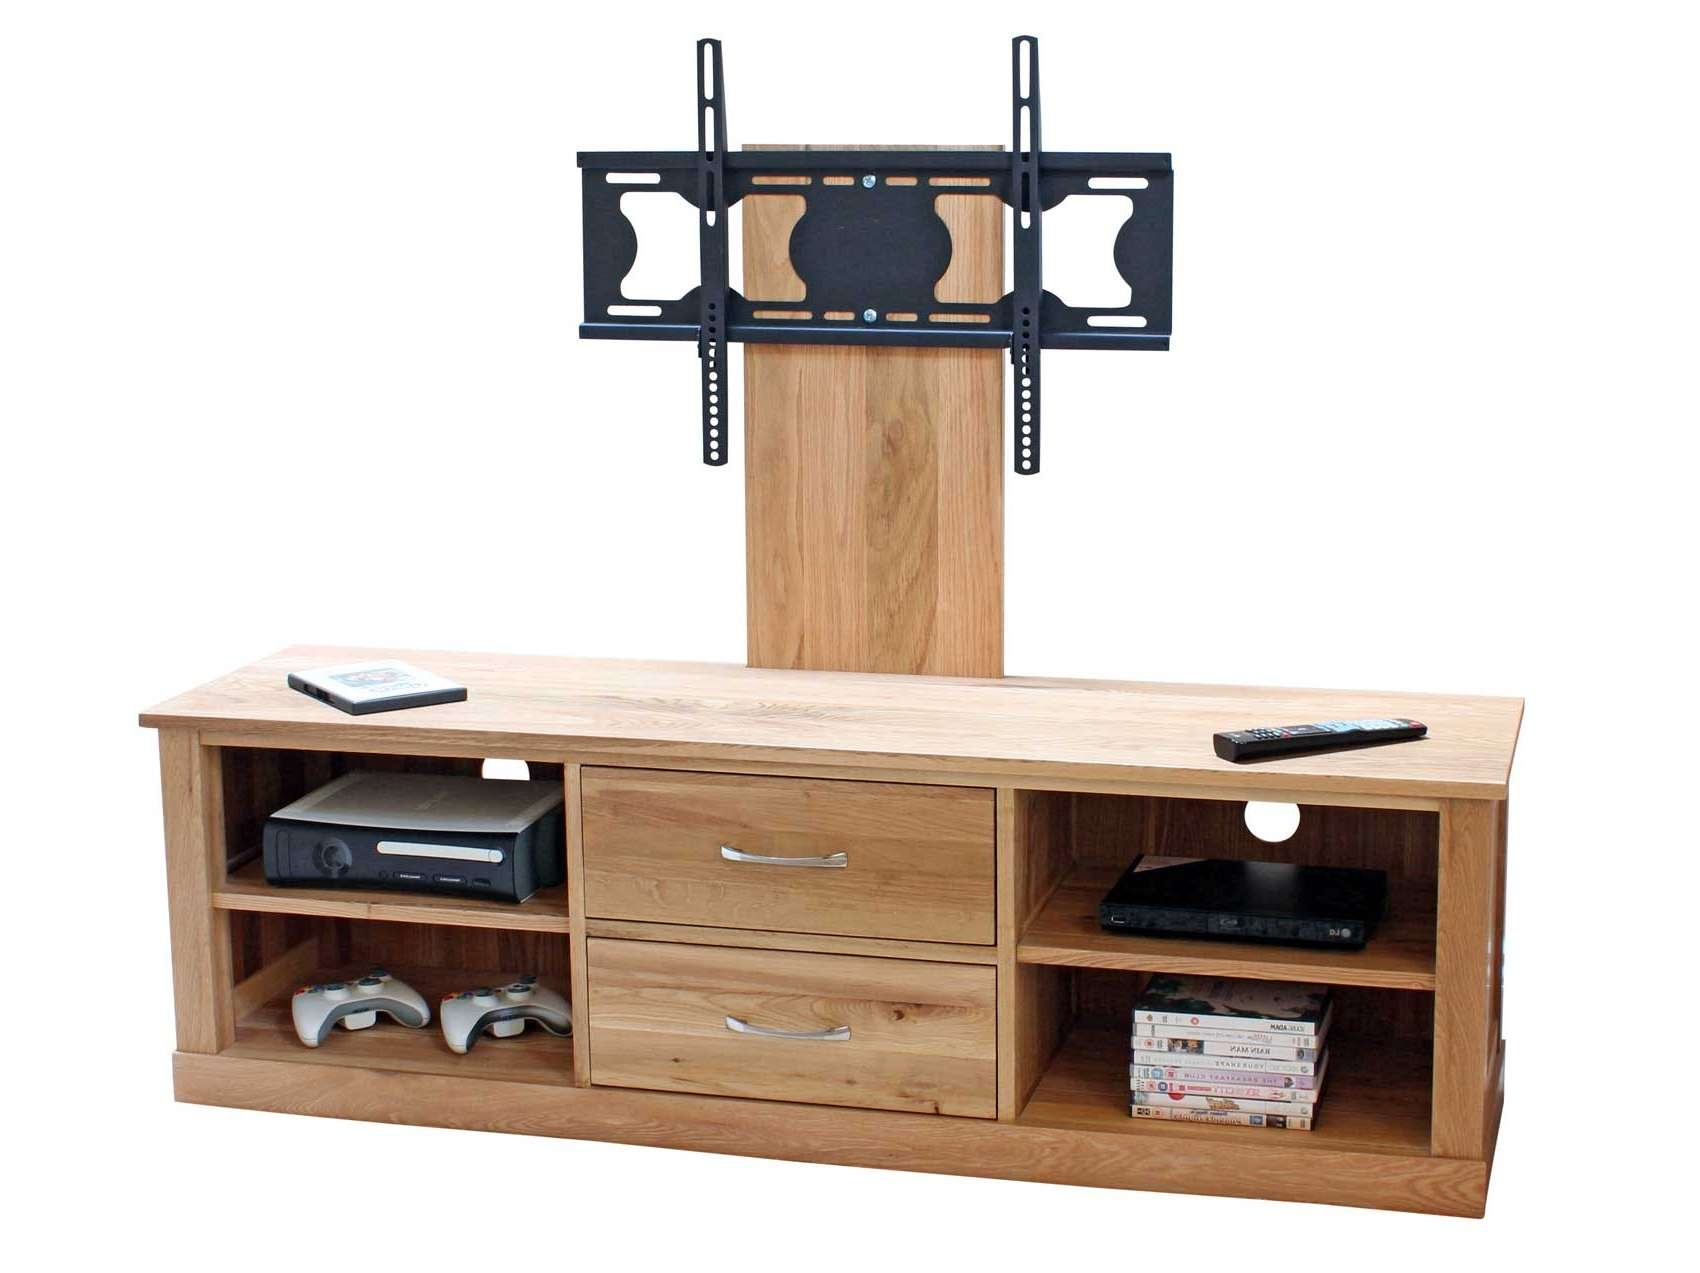 Oak Wooden Tv Stand With Mount For Flat Screen Of 14 Gorgeous Pertaining To Wood Tv Stands With Swivel Mount (Gallery 6 of 15)